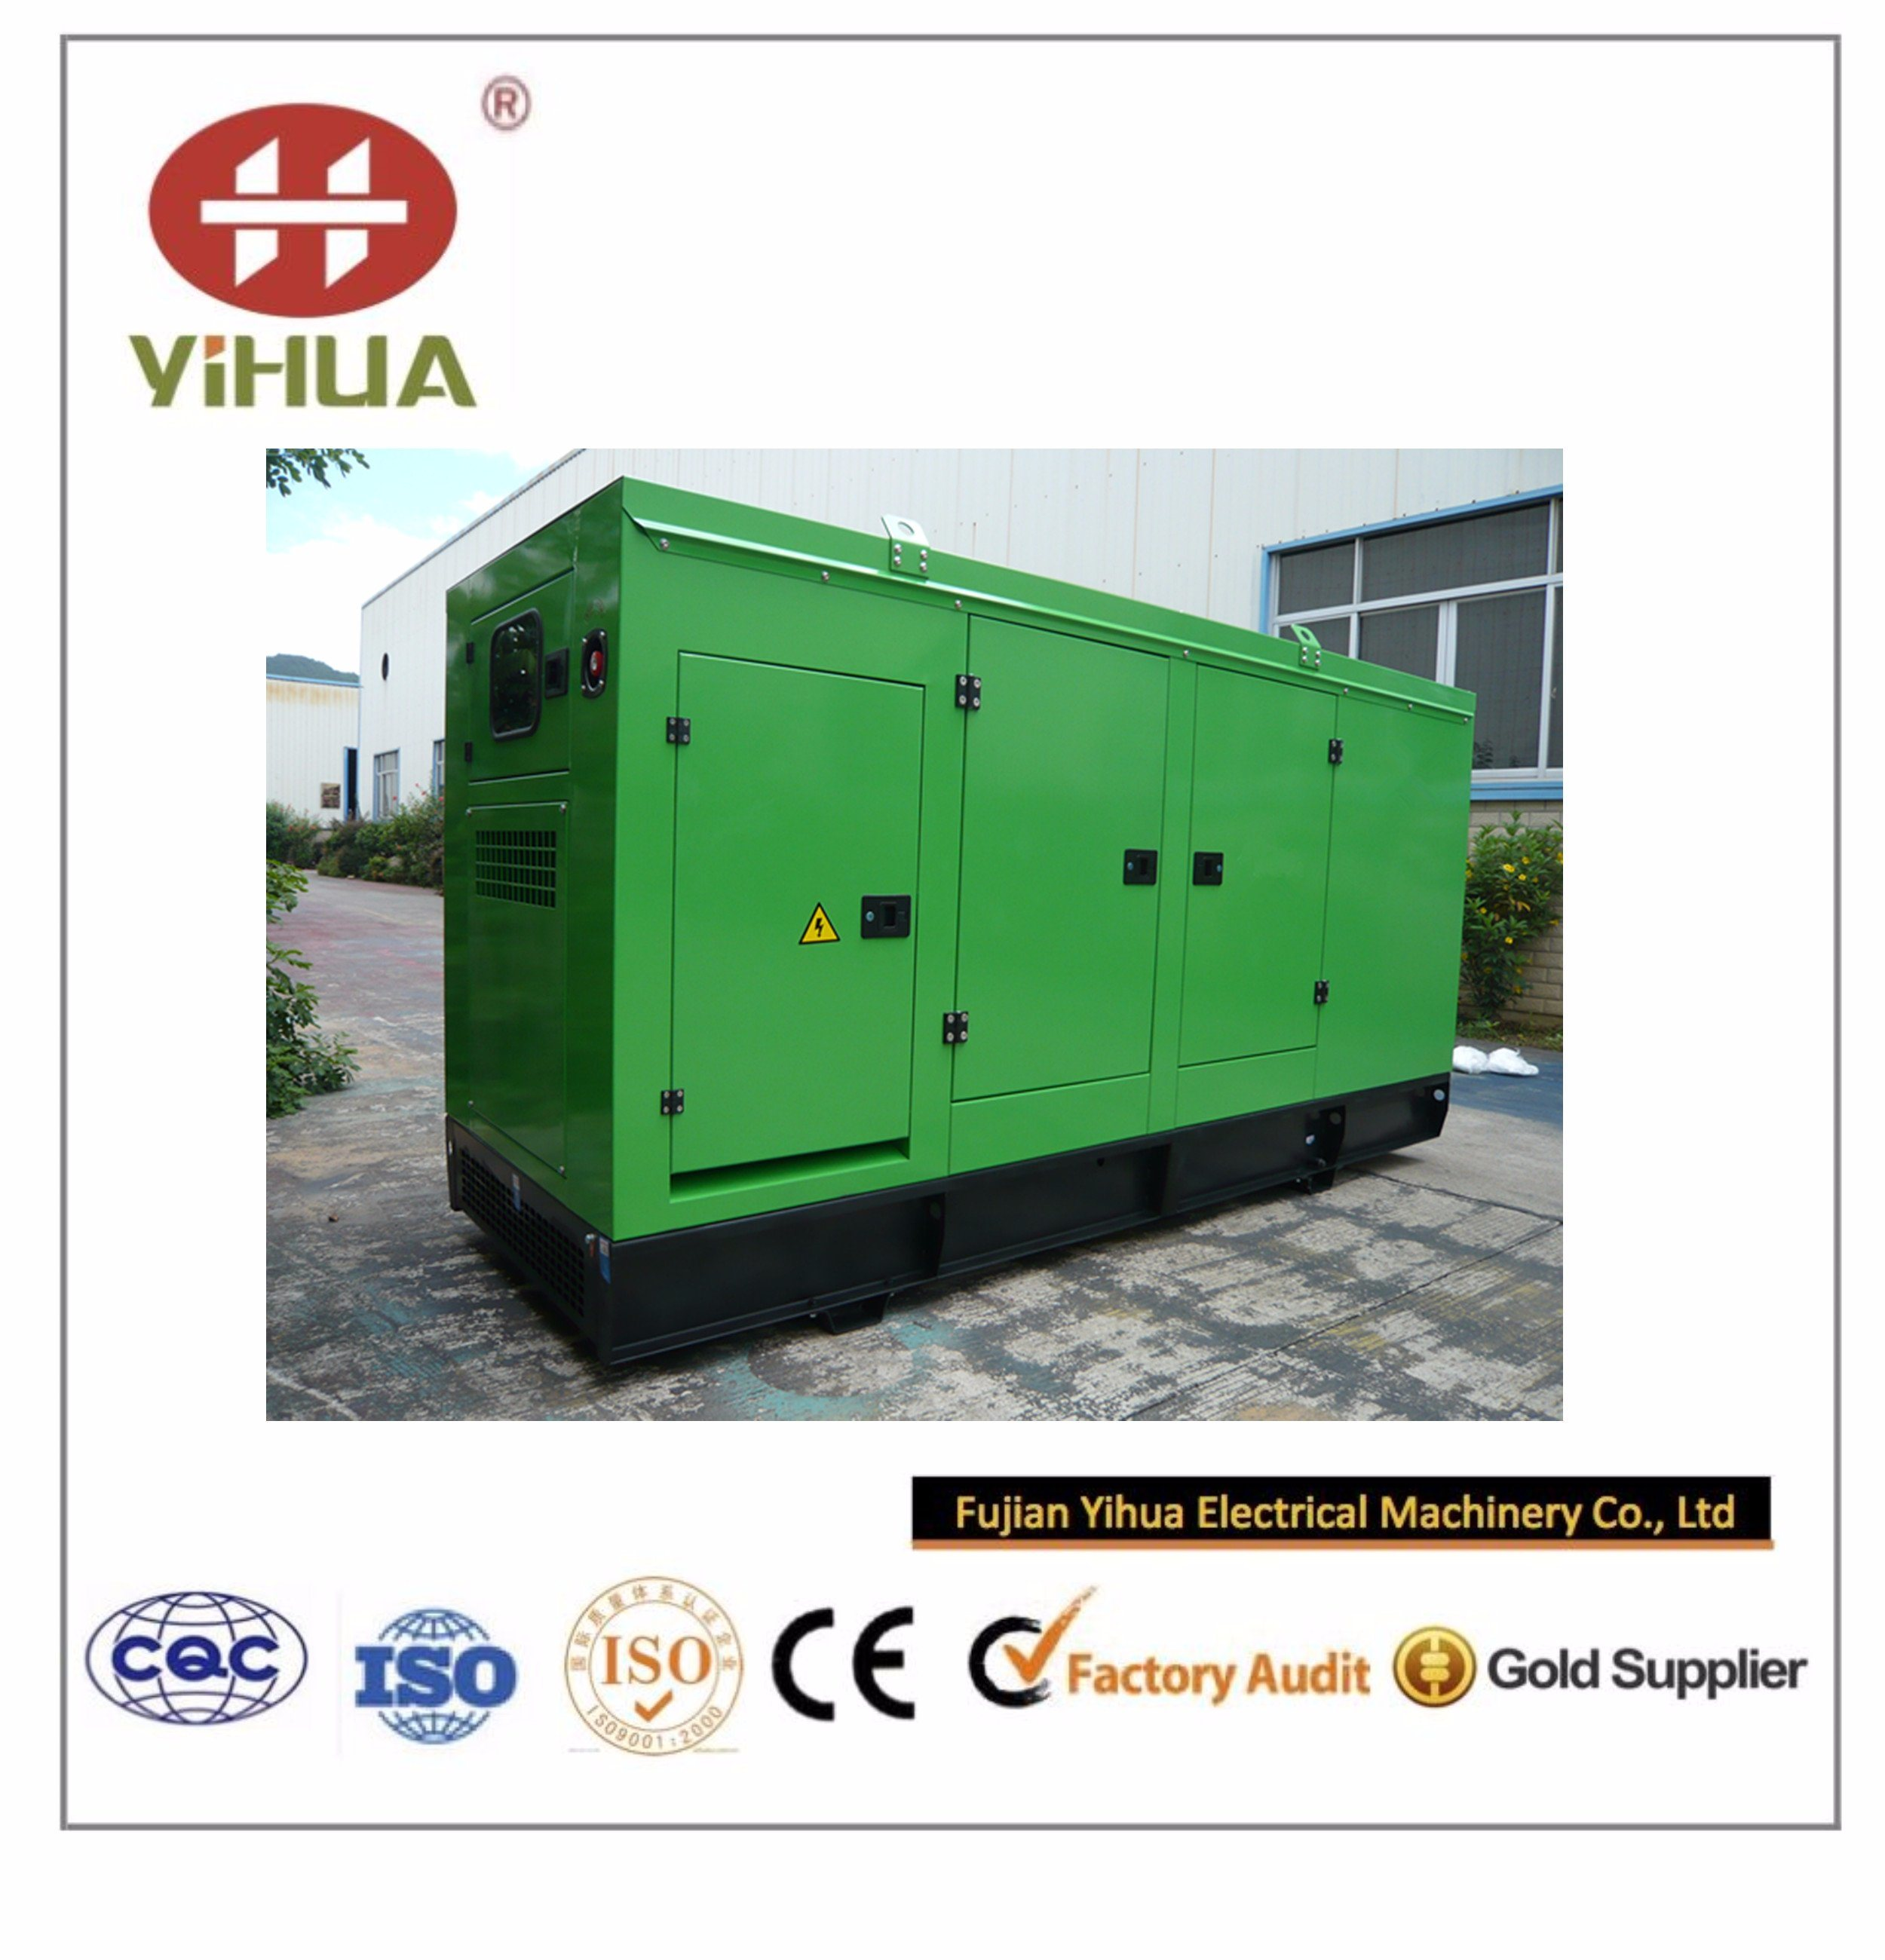 Cummins Power Soundproof Generator with CIQ/Soncap/Ce Certifications (20kVA~250kVA)